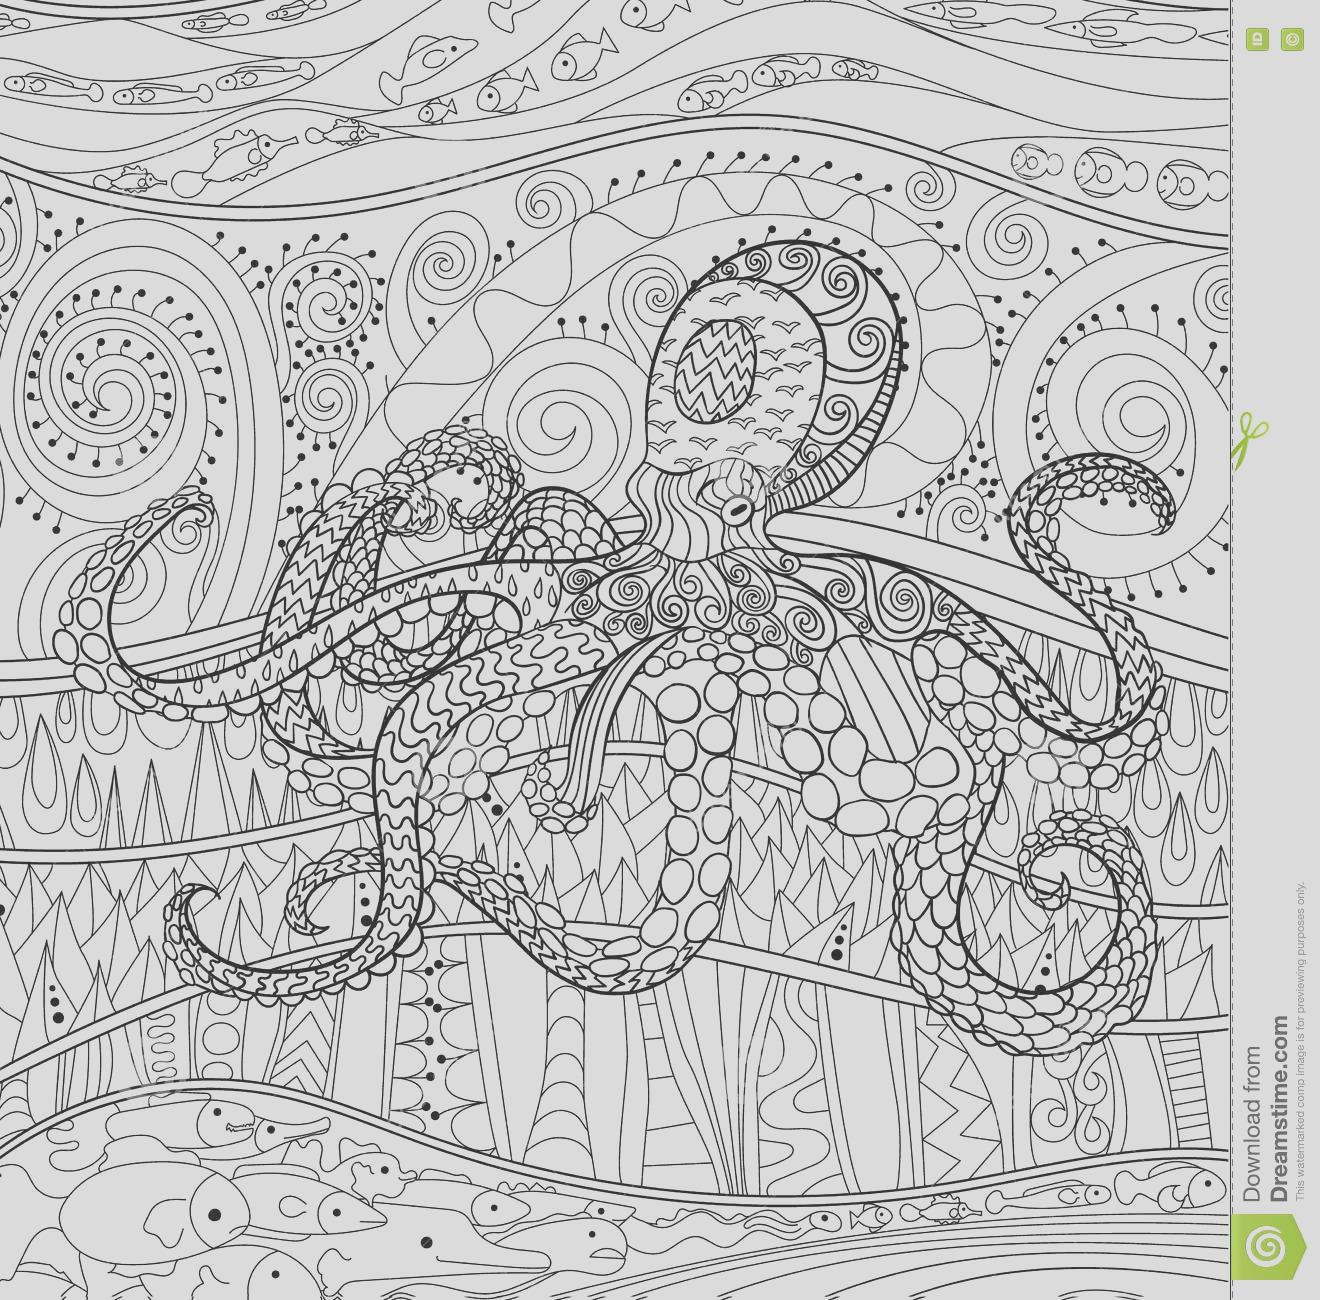 stock illustration octopus high details adult antistress coloring page black white sea animal art therapy abstract pattern oceanic image